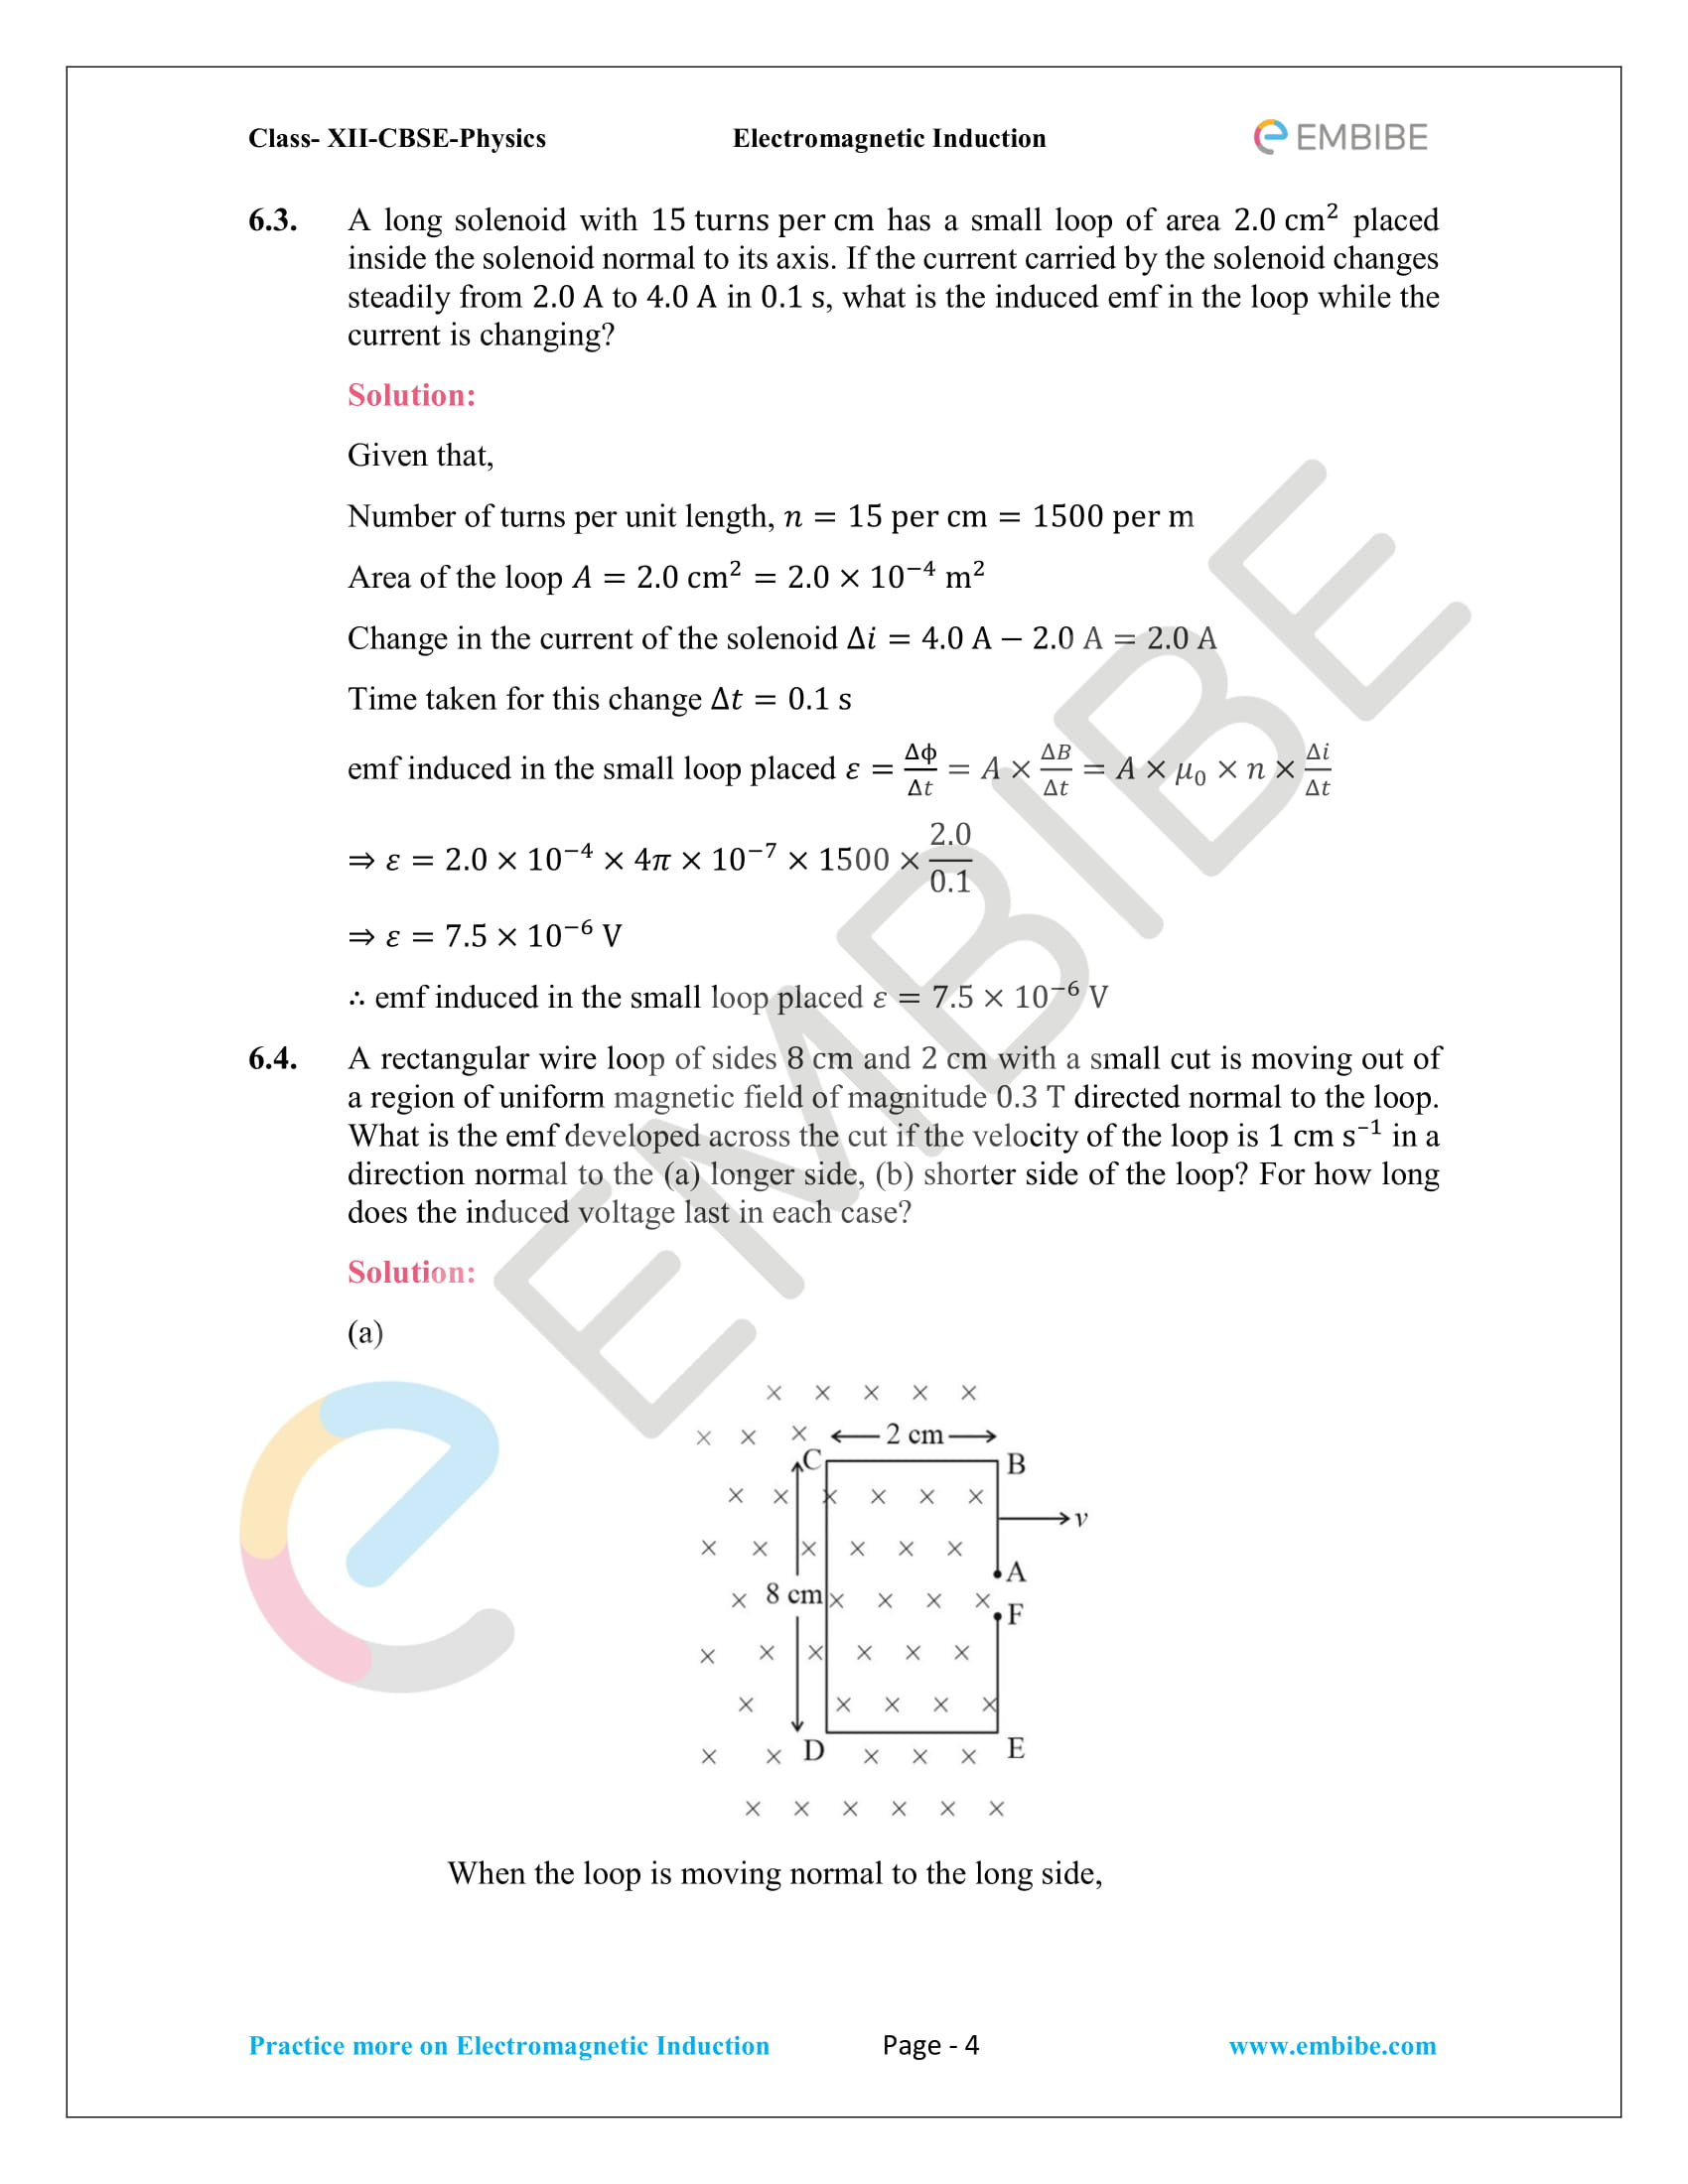 CBSE NCERT Solutions Class 12 Physics Chapter 6 PDF - Electromagnetic Induction - 4